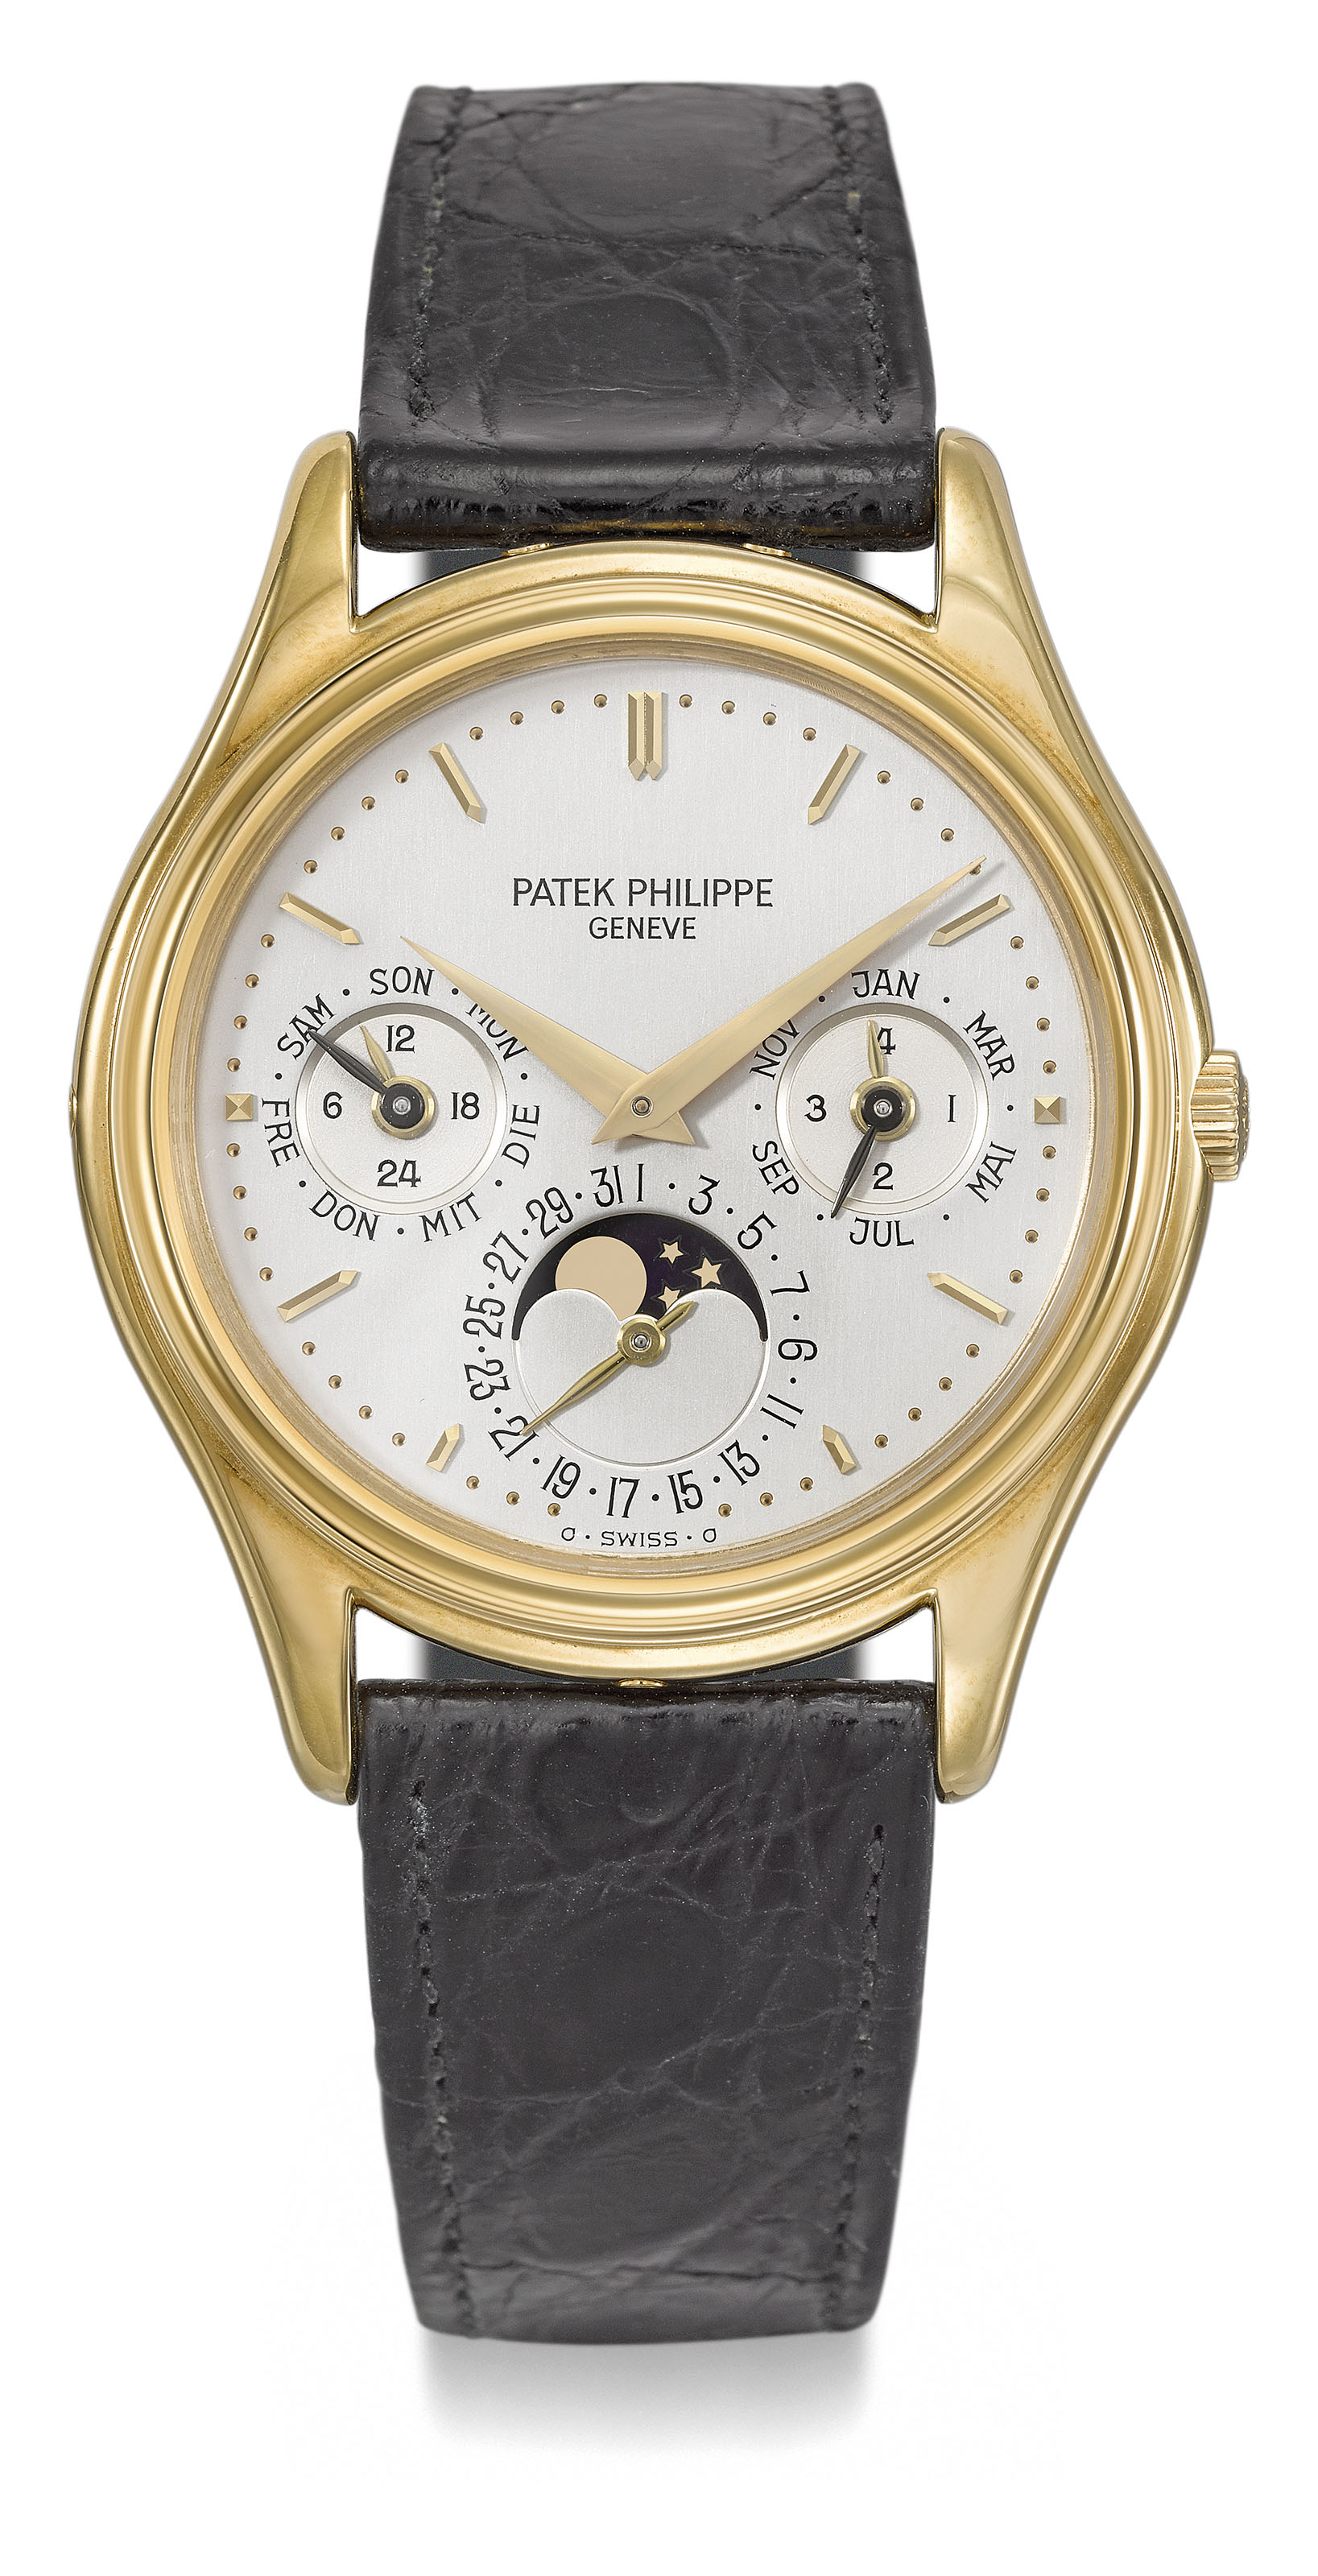 Patek Philippe. A very fine 18K gold automatic perpetual calendar wristwatch with moon phases, German calendar, Certificate of Origin and box